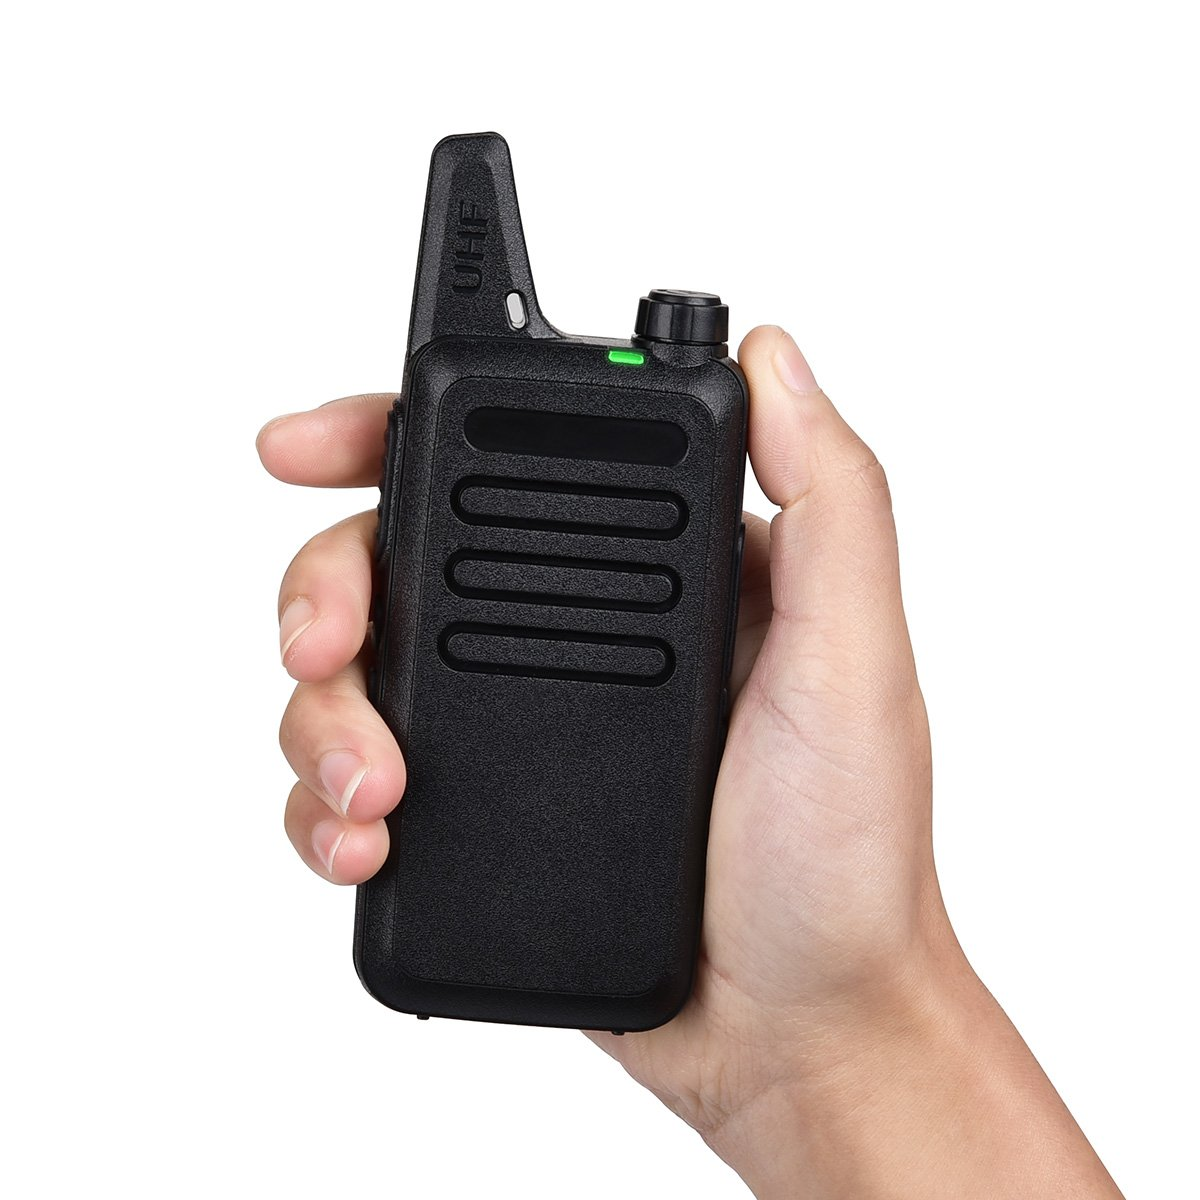 Swiftion Rechargeable Walkie Talkies for Hunting Long Range 2 Way Radio Walky Talky Rechargable Professional interphone for Trave for Police 16 Channel 2 Way Radios with Charger (Pack of 2) by Swiftion (Image #6)